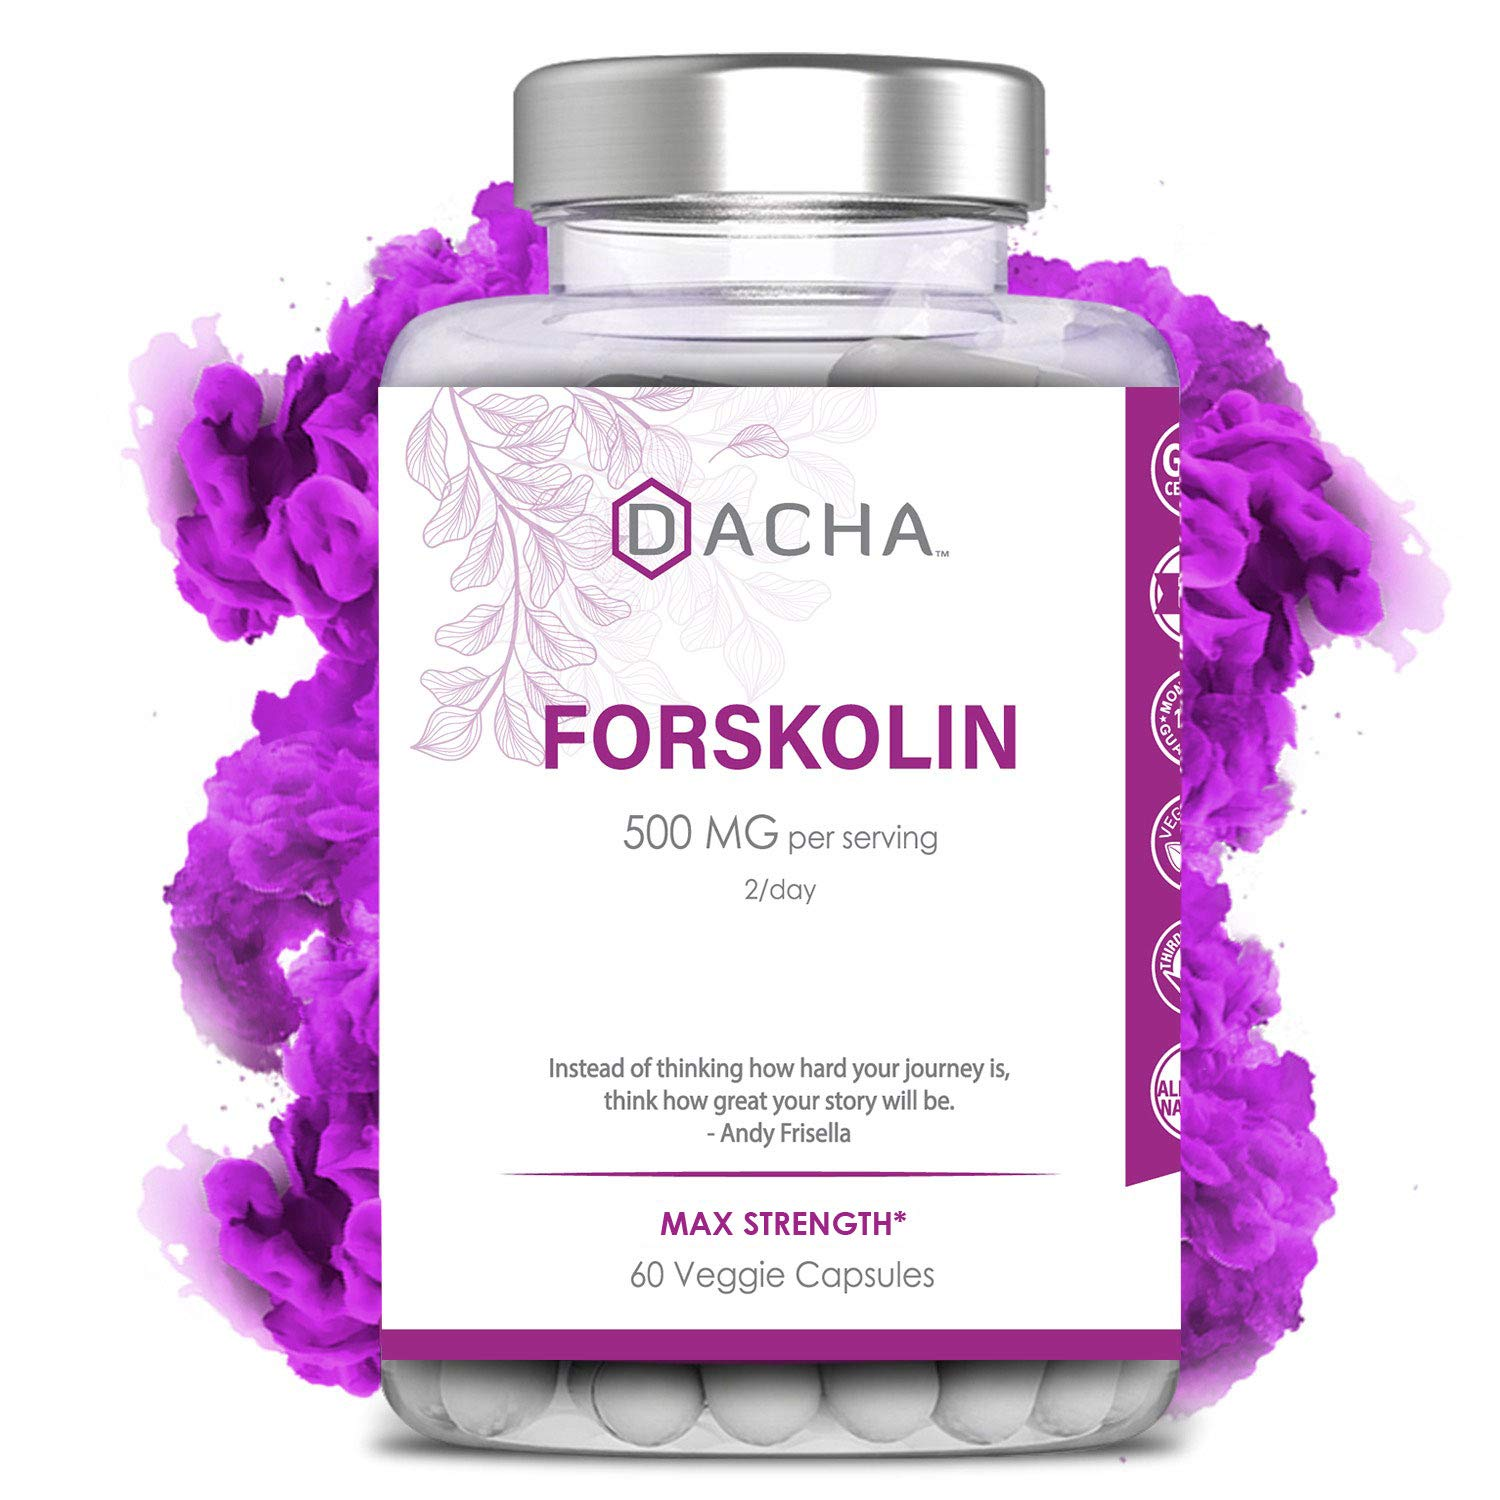 Premium Forskolin 20% Standardized Extract - Keto Diet Pills That Work Fast for Women & Men, Pure Rapid Tone, All Natural Coleus Forskohlii 500mg, Made in USA, Luna Trim Advanced Dietary Supplement